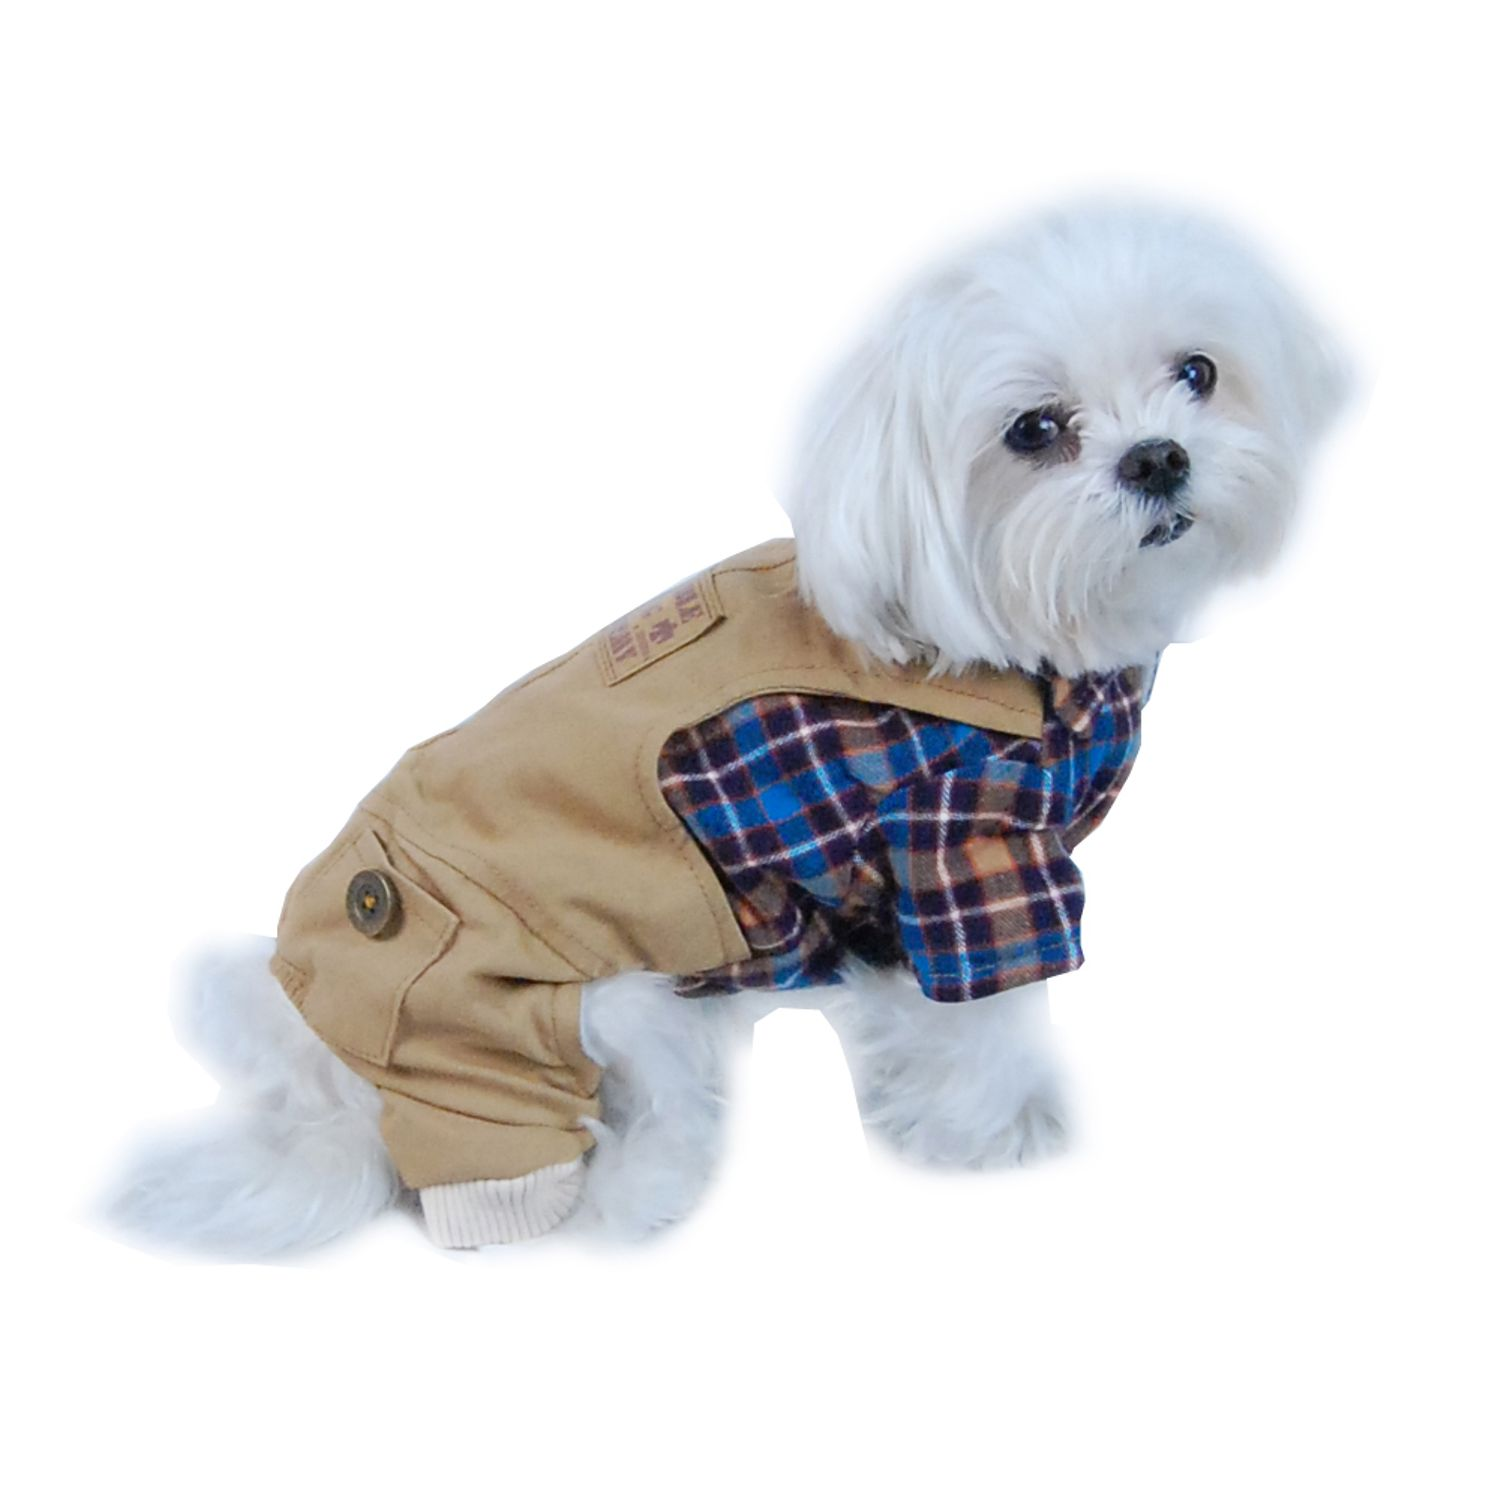 Blue/Brown Plaid Top with Denim Overalls Puppy Dog Clothing Clothes Pet Outfit (One-Piece) Apparel - Medium (Gift for Pet)